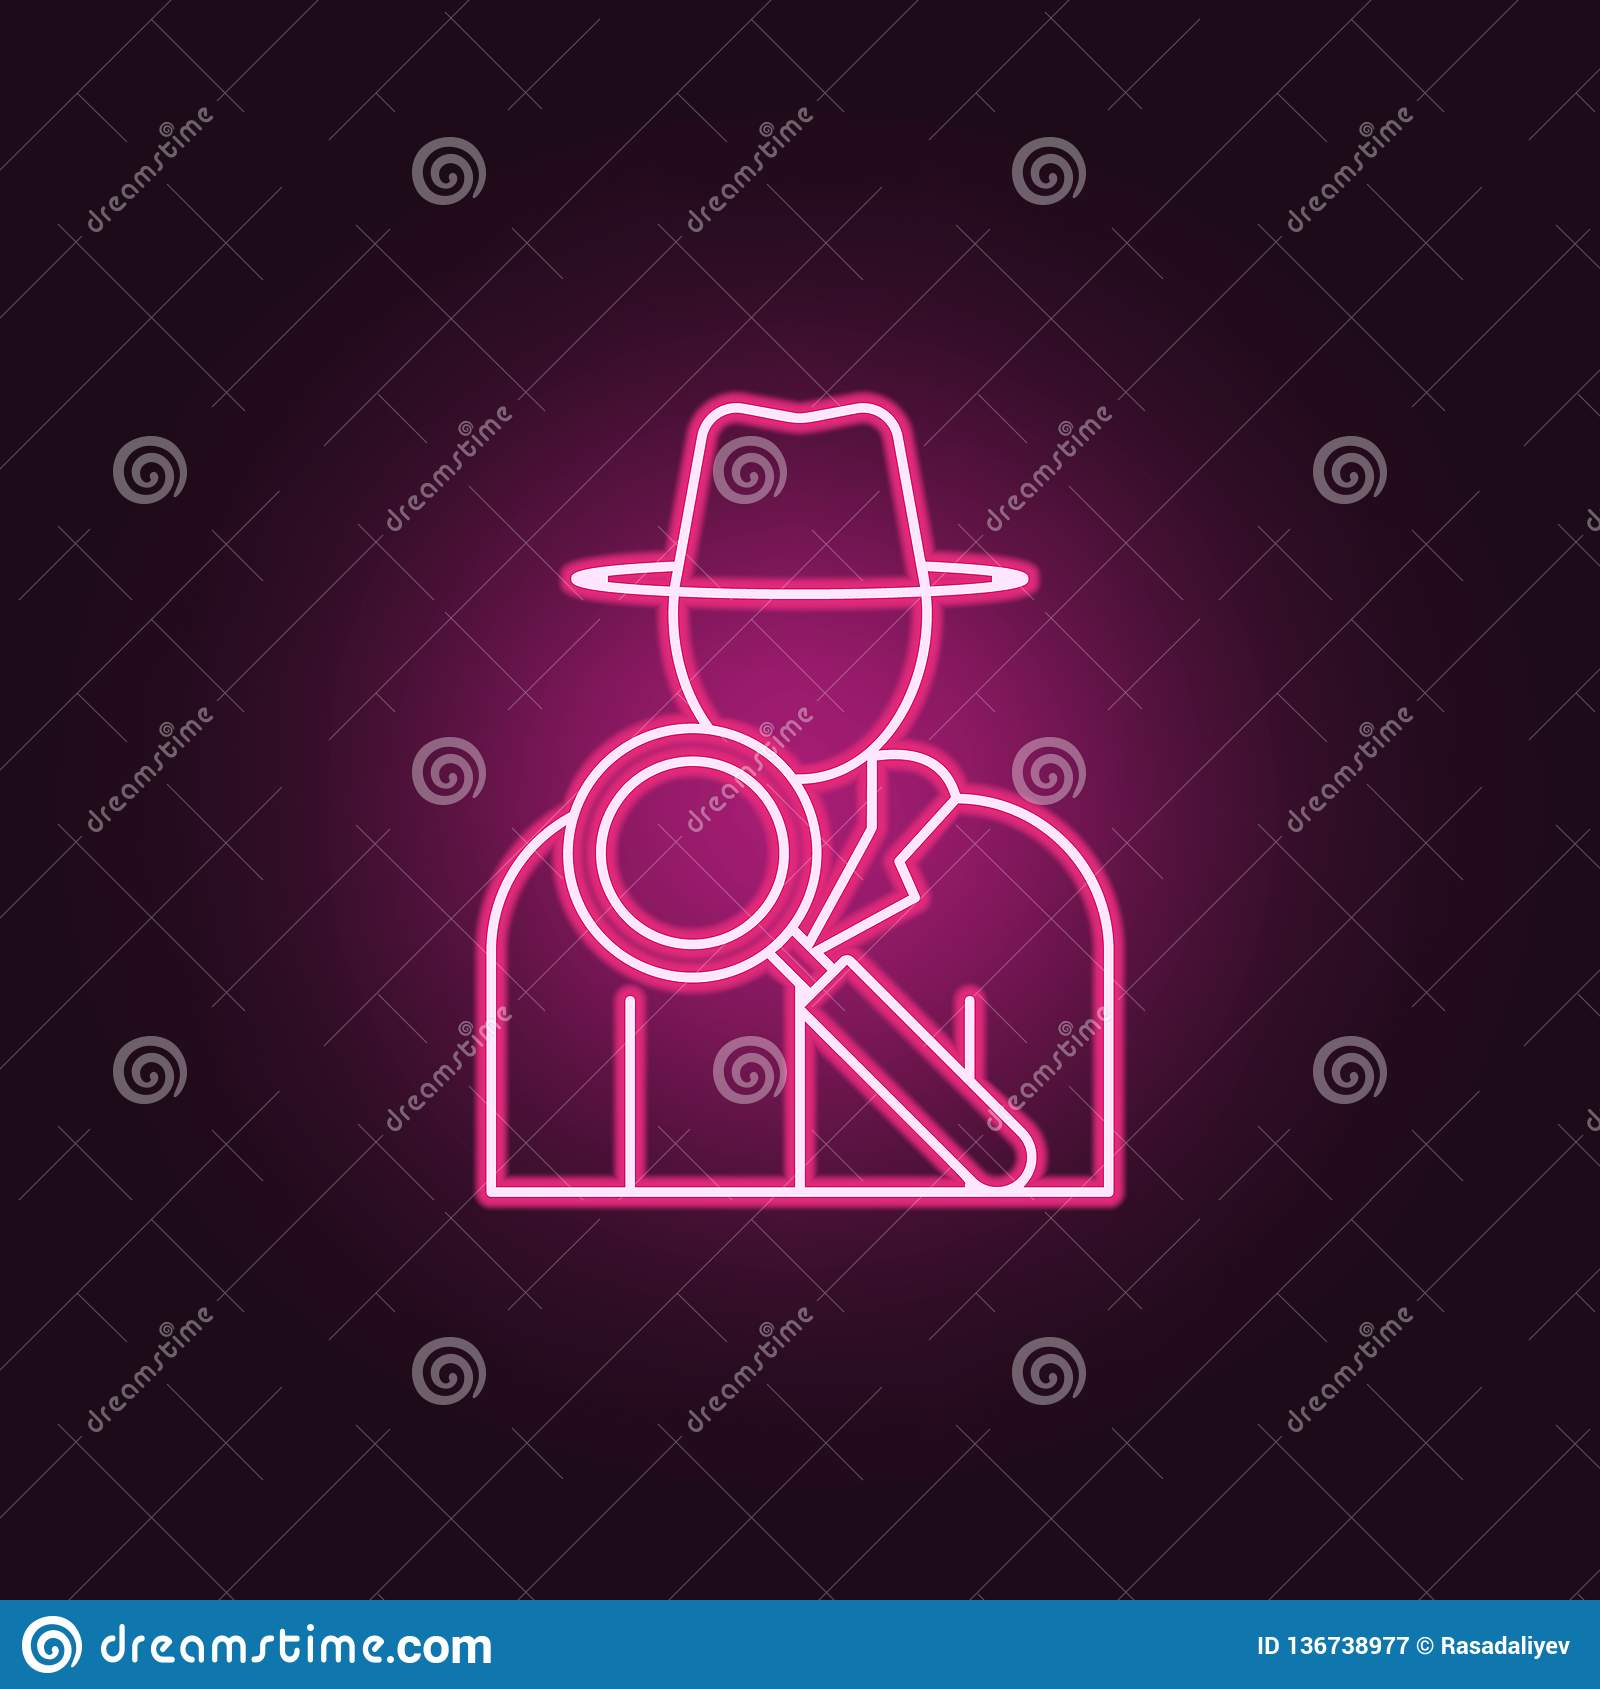 Detective Icon  Elements Of Crime Investigation In Neon Style Icons